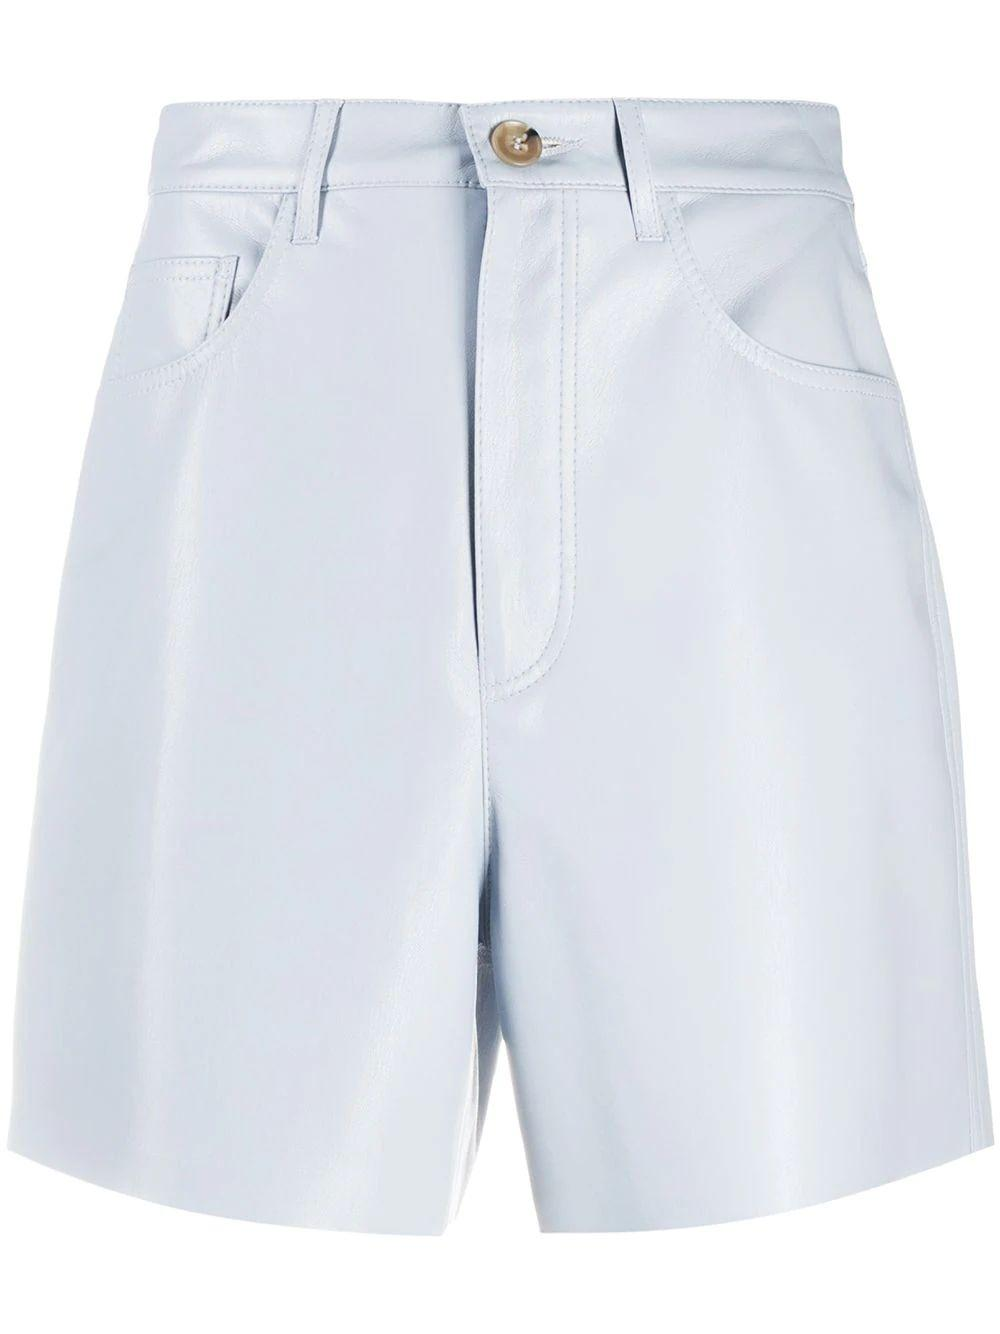 Leana Leather Shorts Item # NW21SSST00352